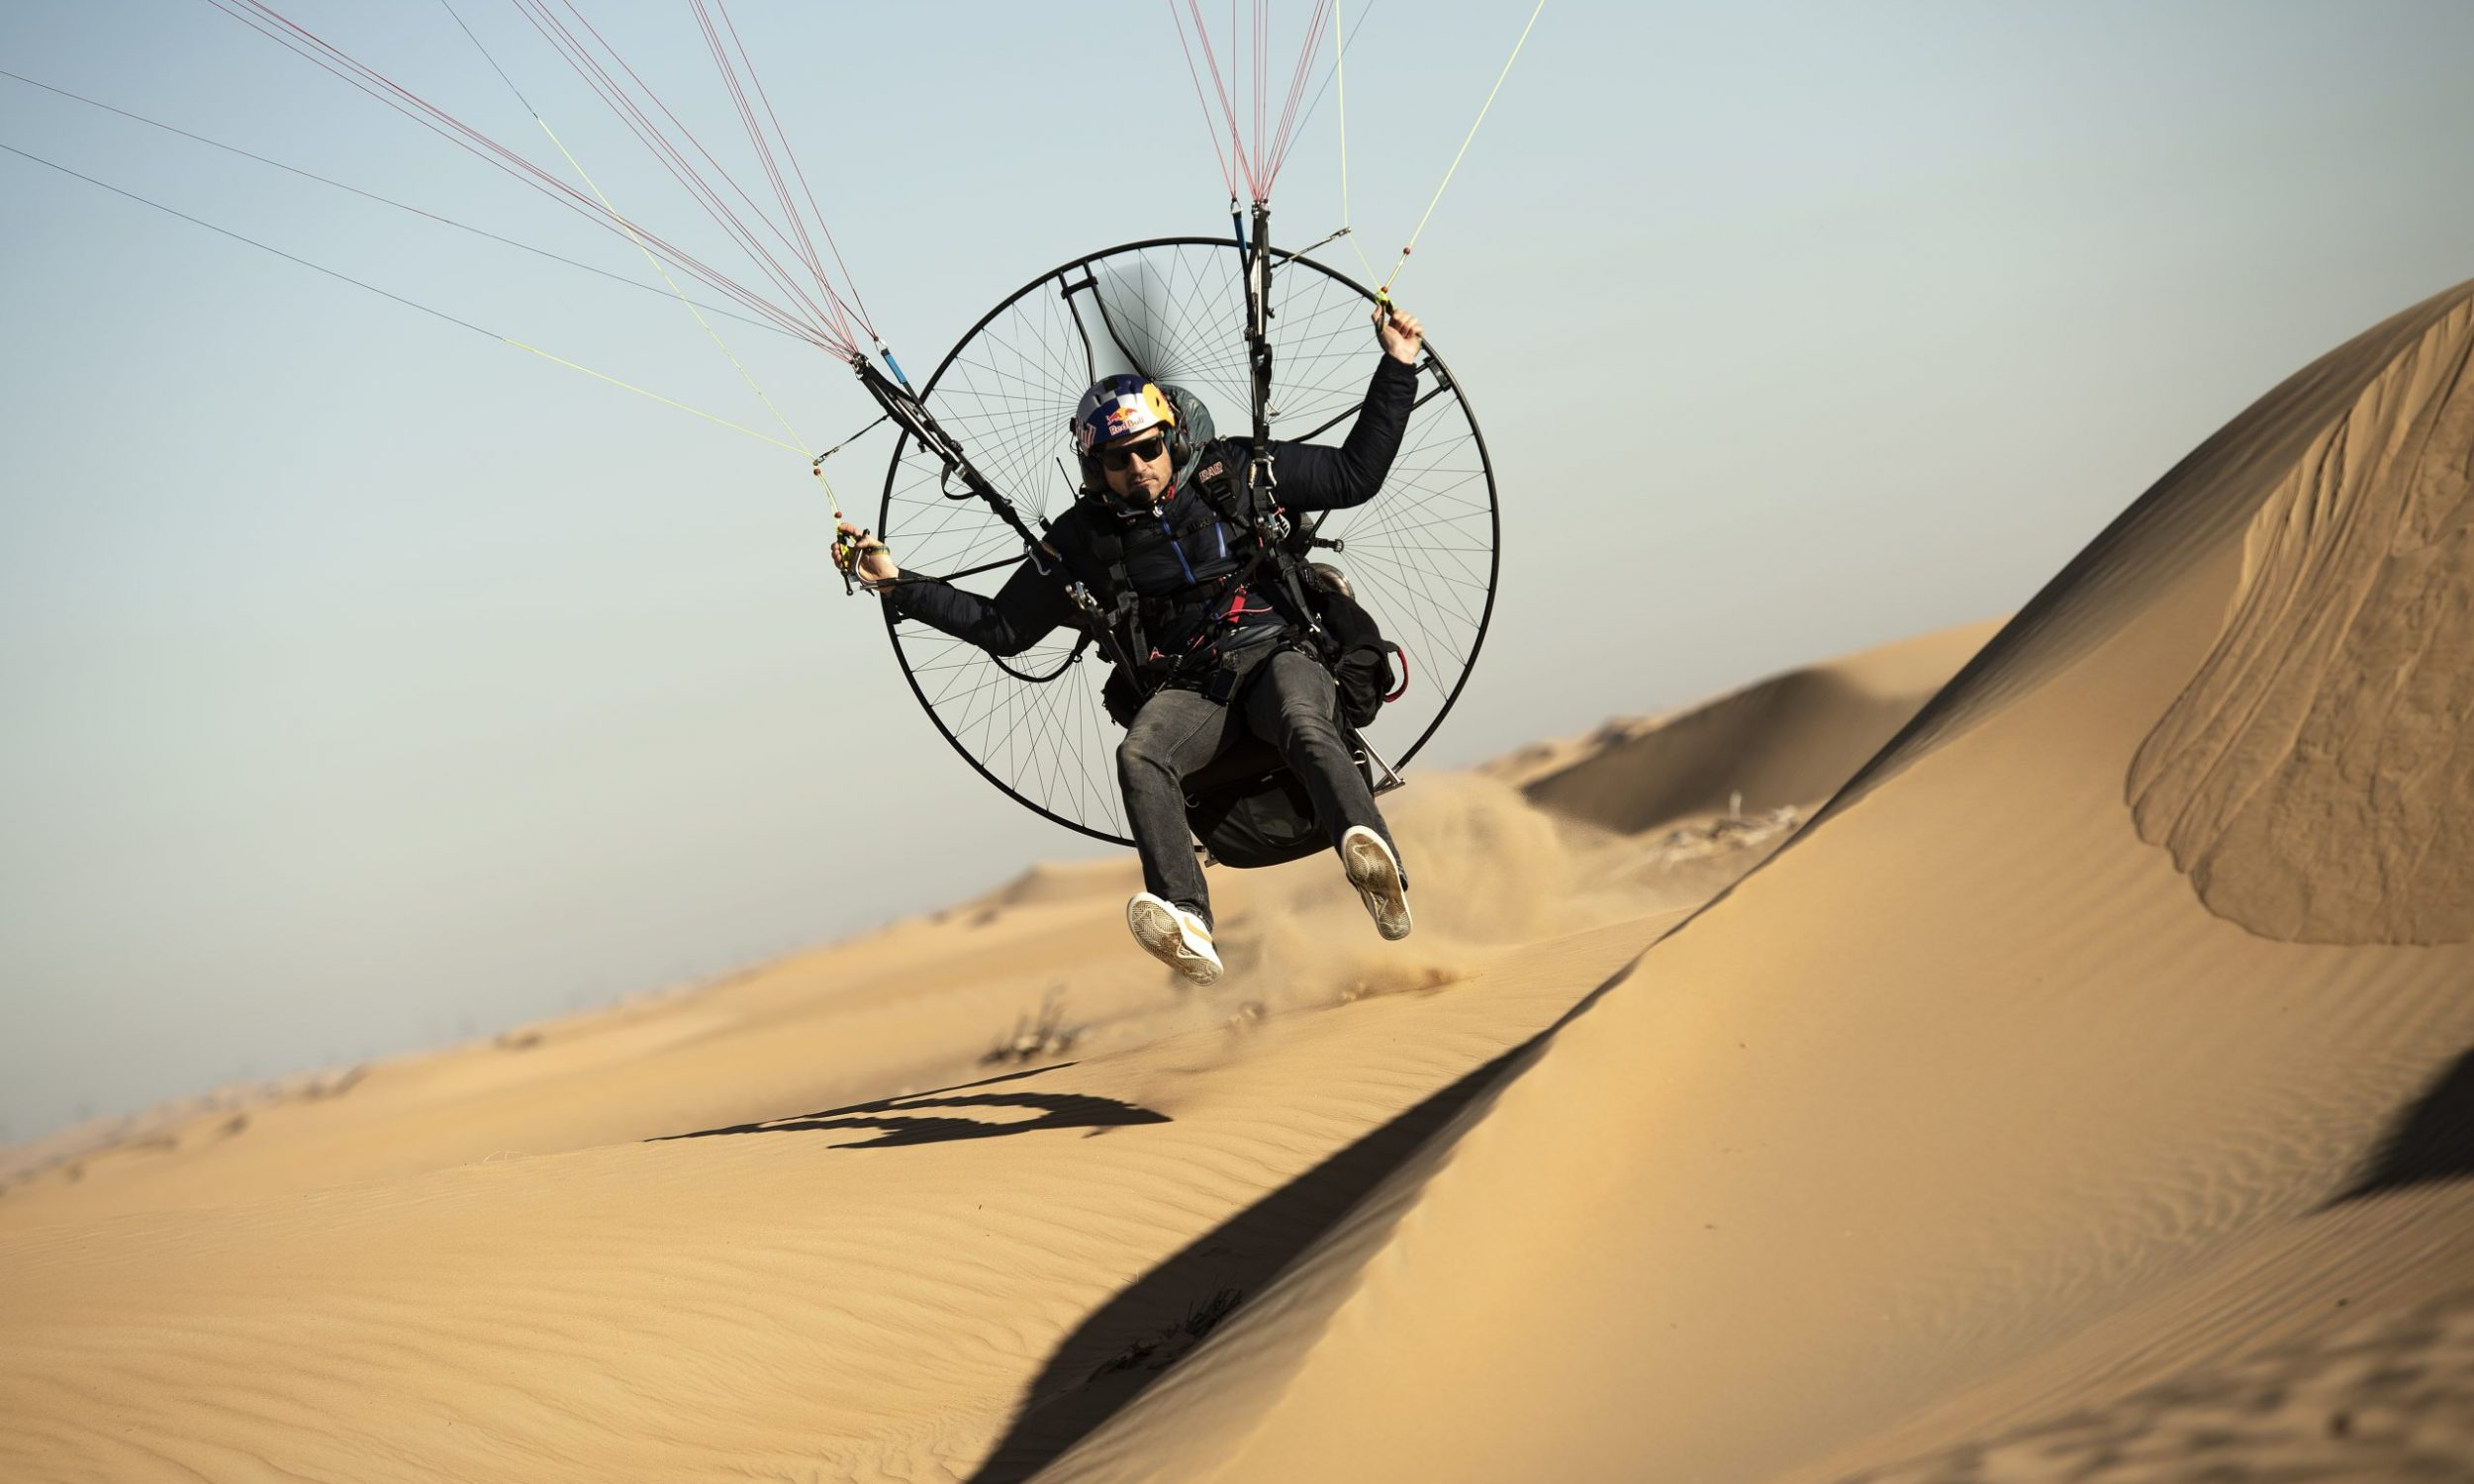 Horacio LIorens of Spain performs during  practice session at Dubai desert in United Arab Emirates on January 12th, 2021